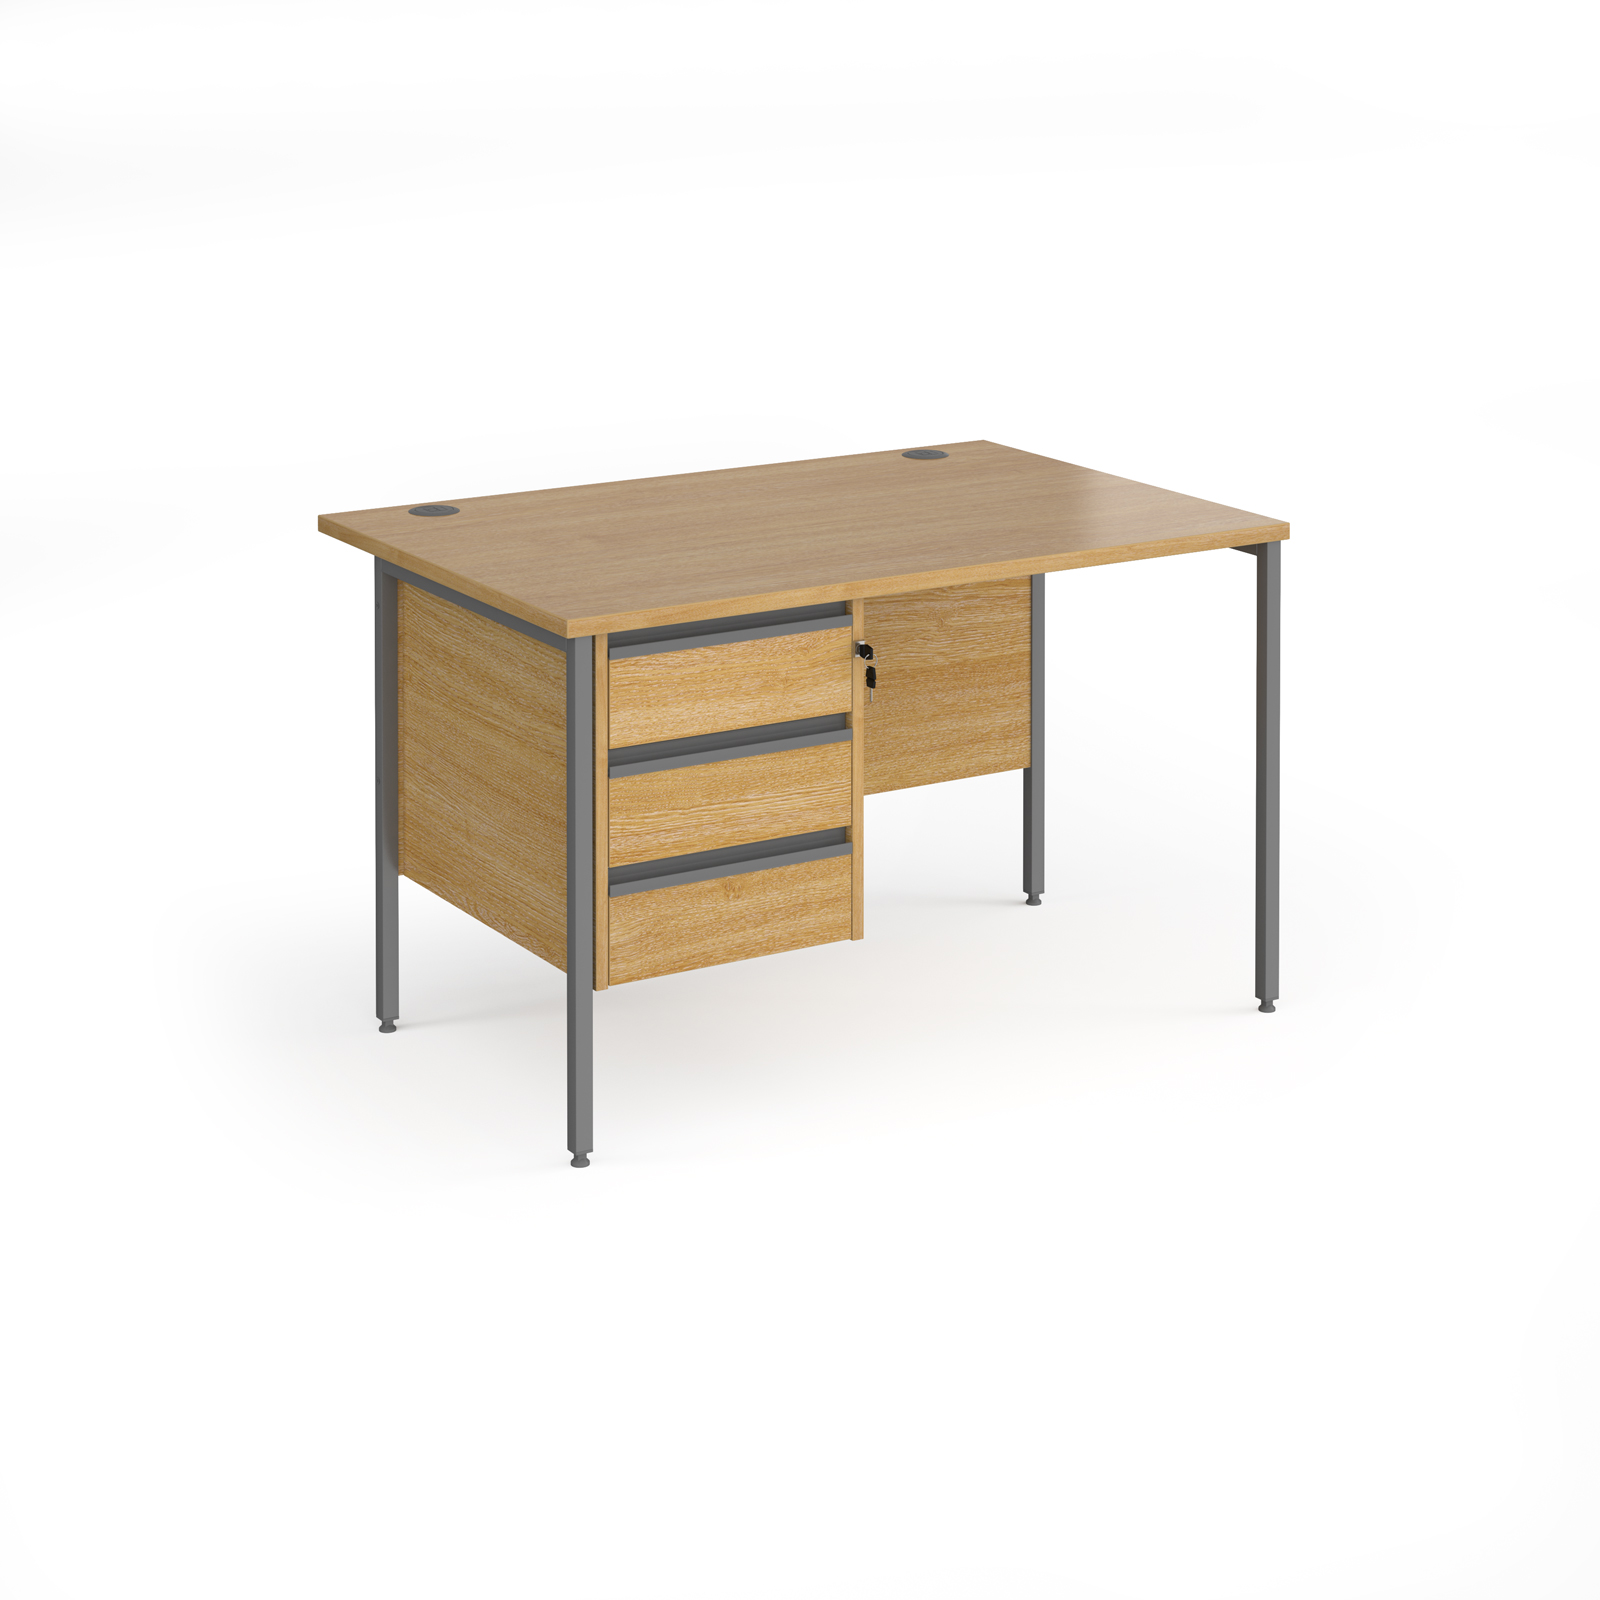 Rectangular Desks Contract 25 straight desk with 3 drawer pedestal and graphite H-Frame leg 1200mm x 800mm - oak top